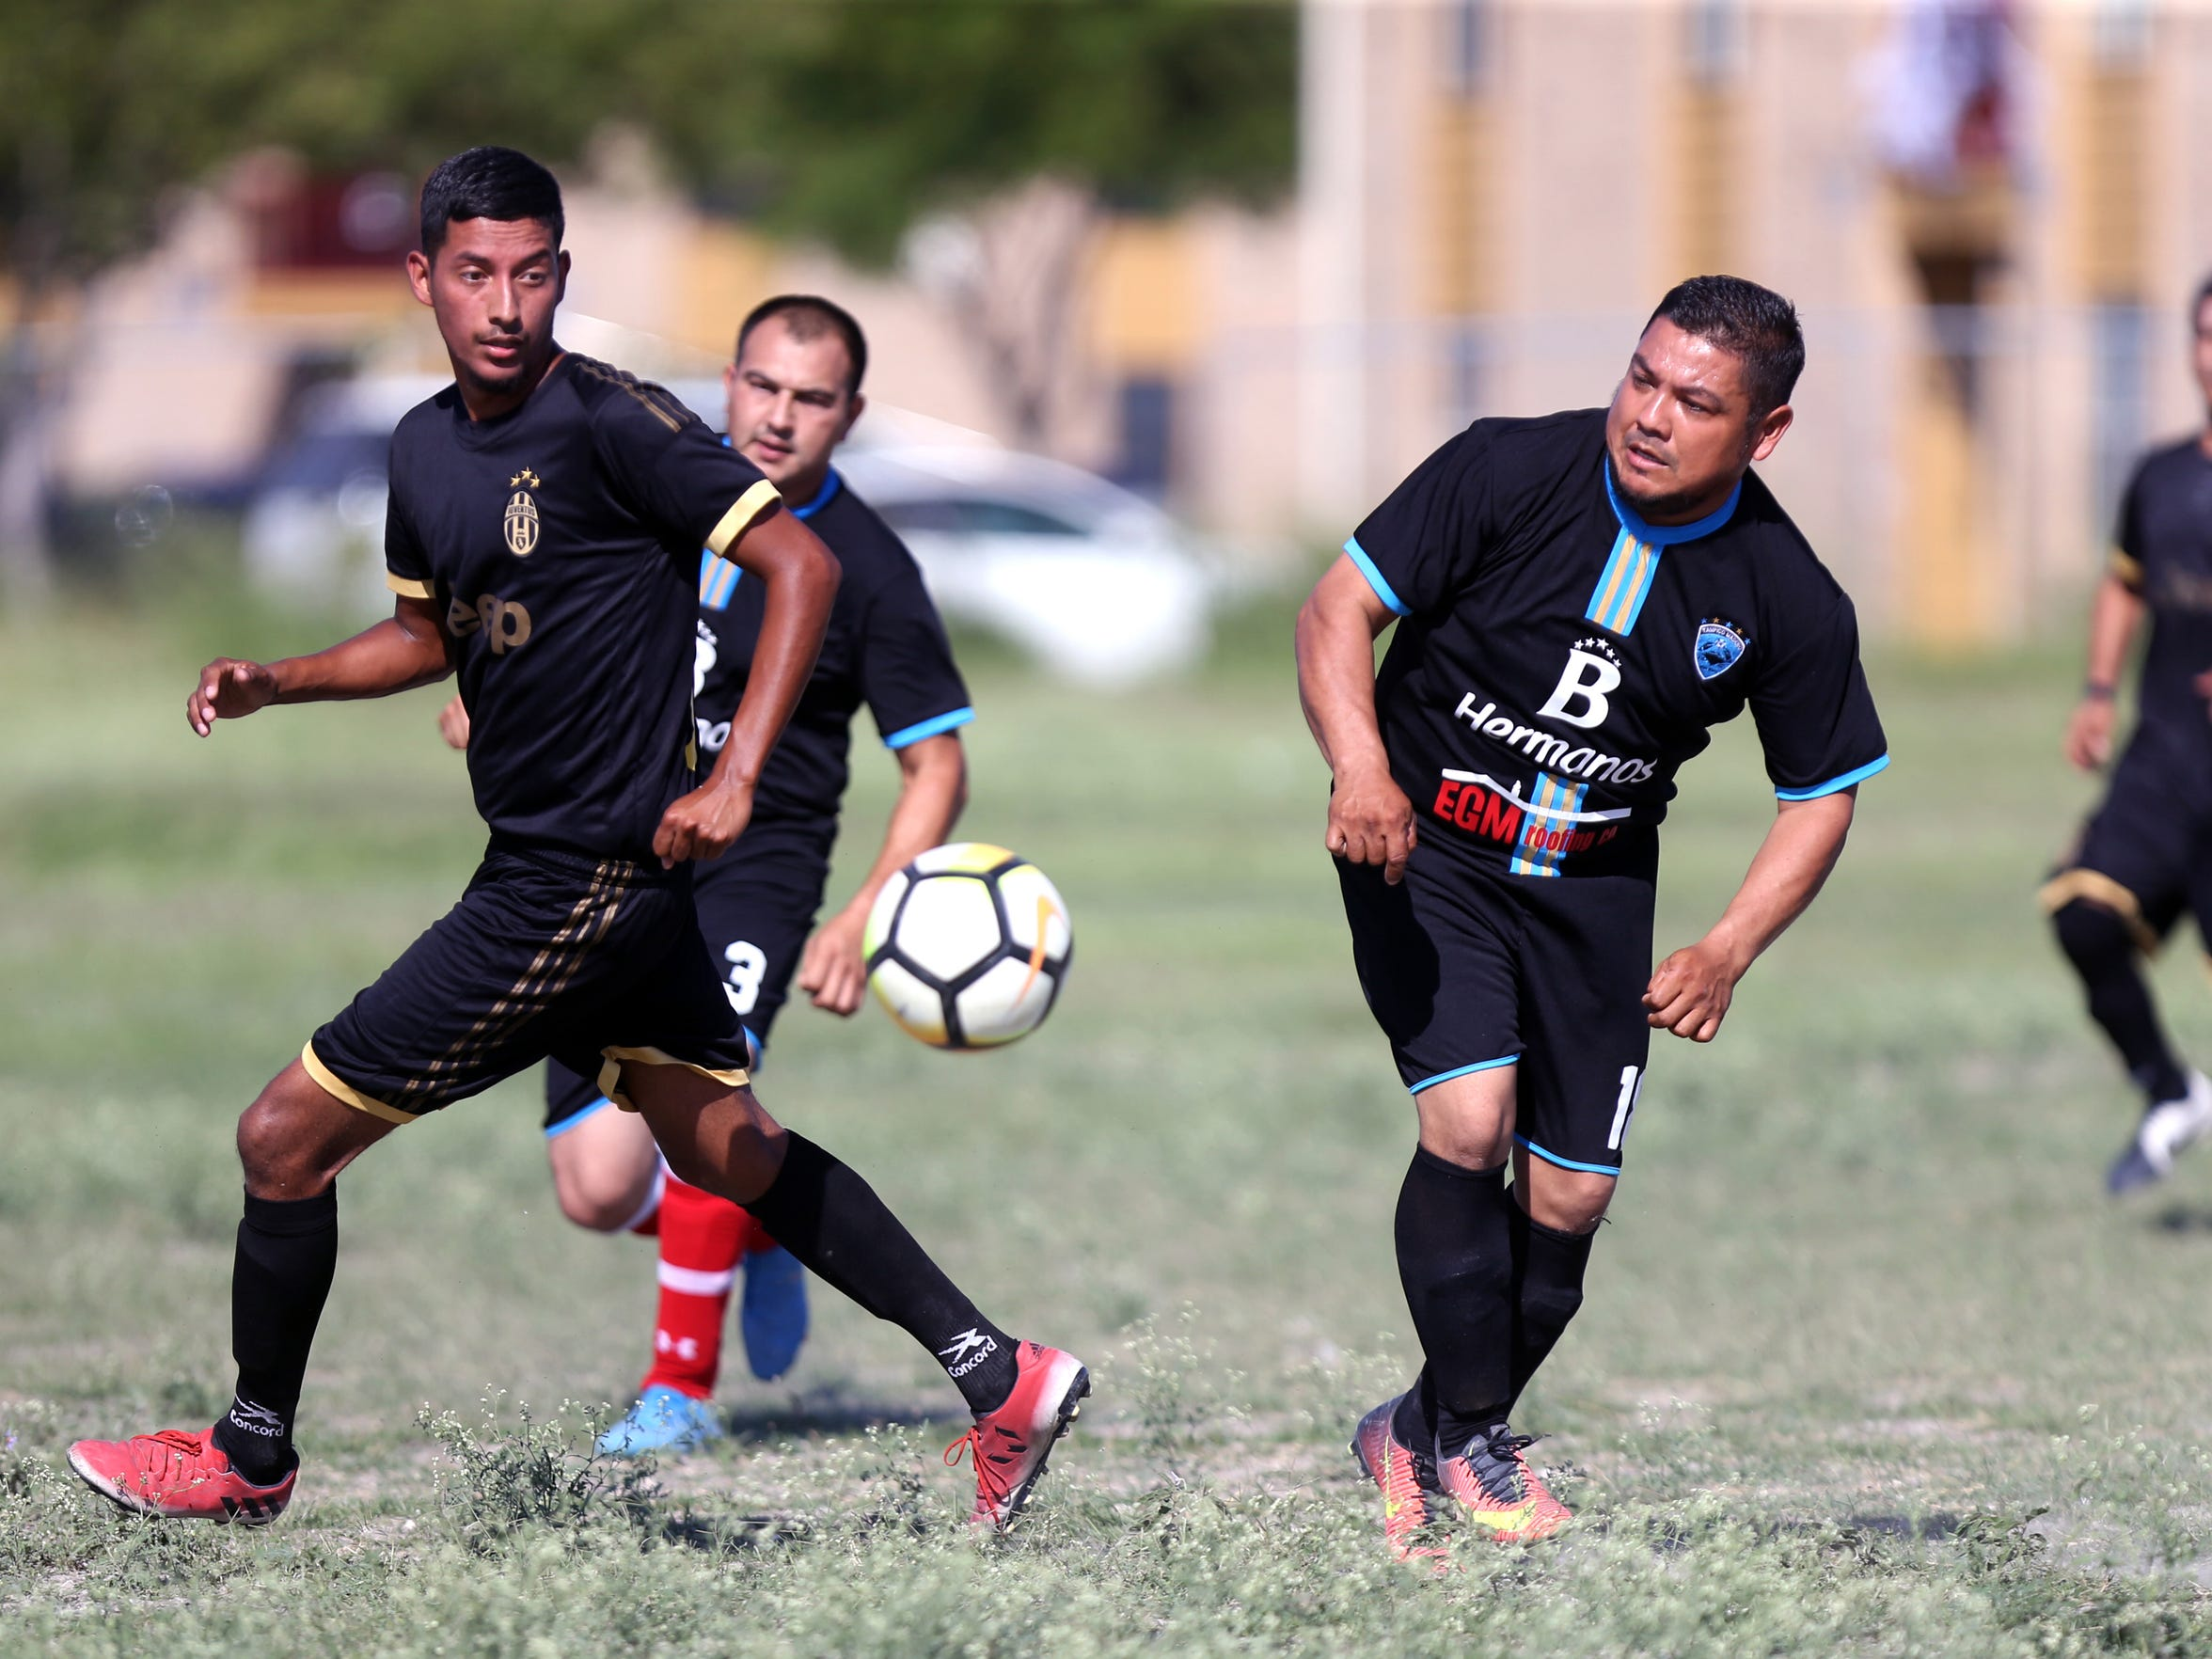 Ezequiel Rojas Martinez plays soccer on Oct. 8, 2017. Sundays are busy days for the family. Following church service at Church Unlimited in Corpus Christi, Rojas typically has a soccer game and then the family goes to eat or goes to a park to play.